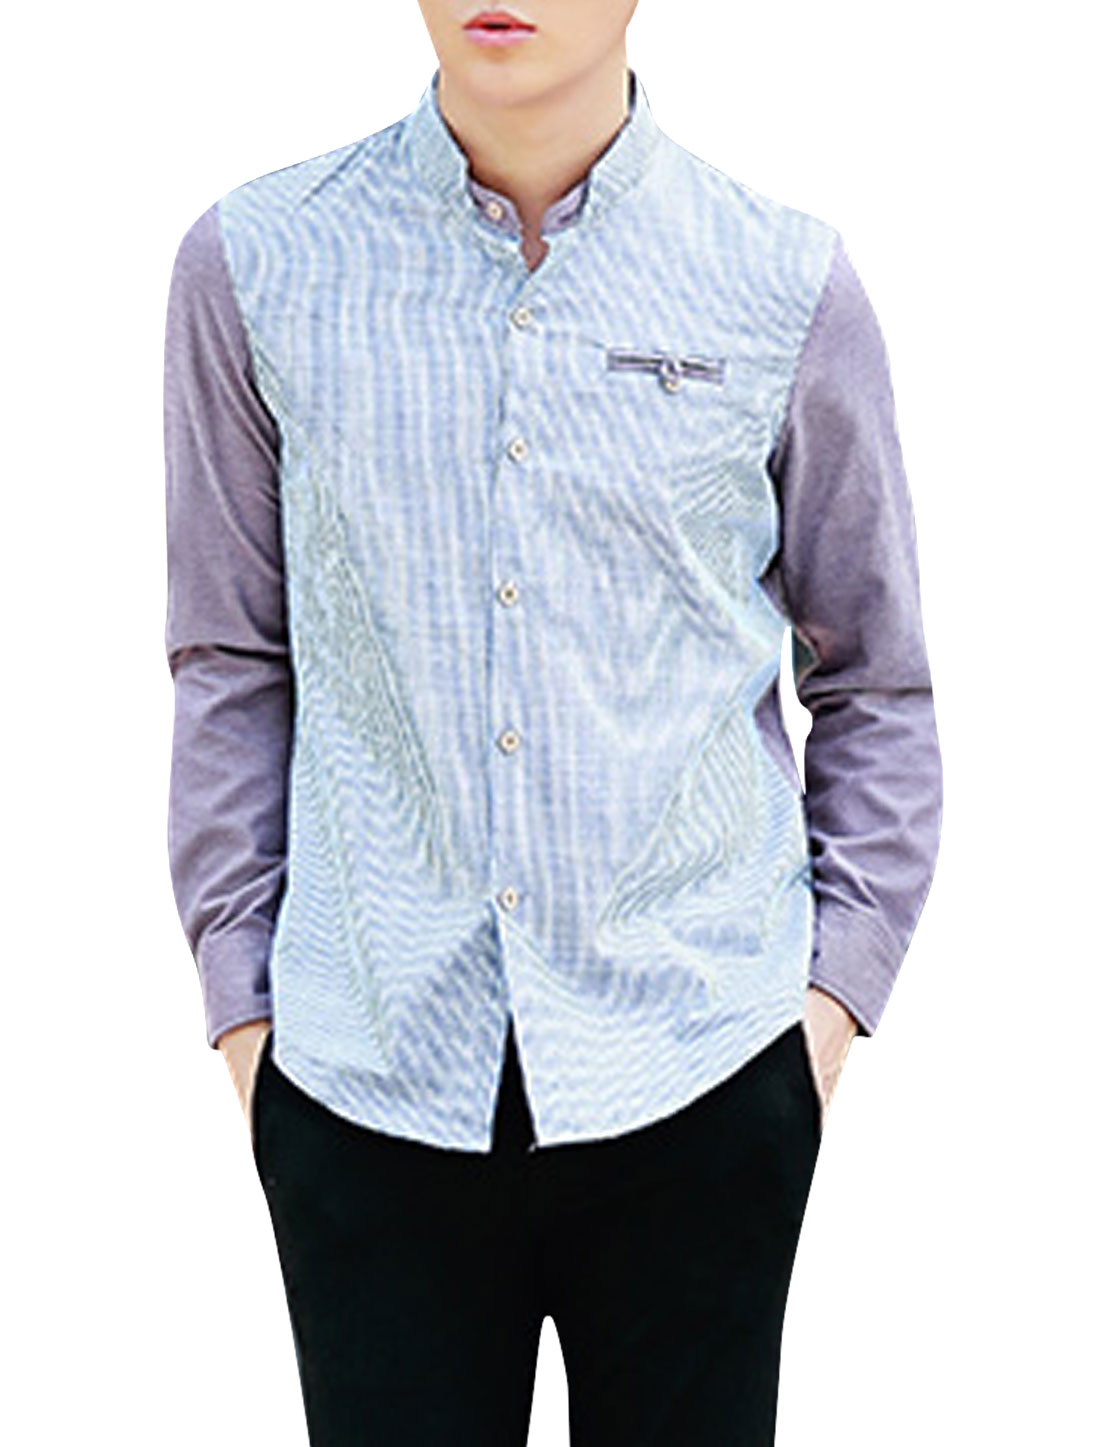 Men Button Cuffs One Fake Pocket Chest Casual Shirt Lavender Baby Blue M